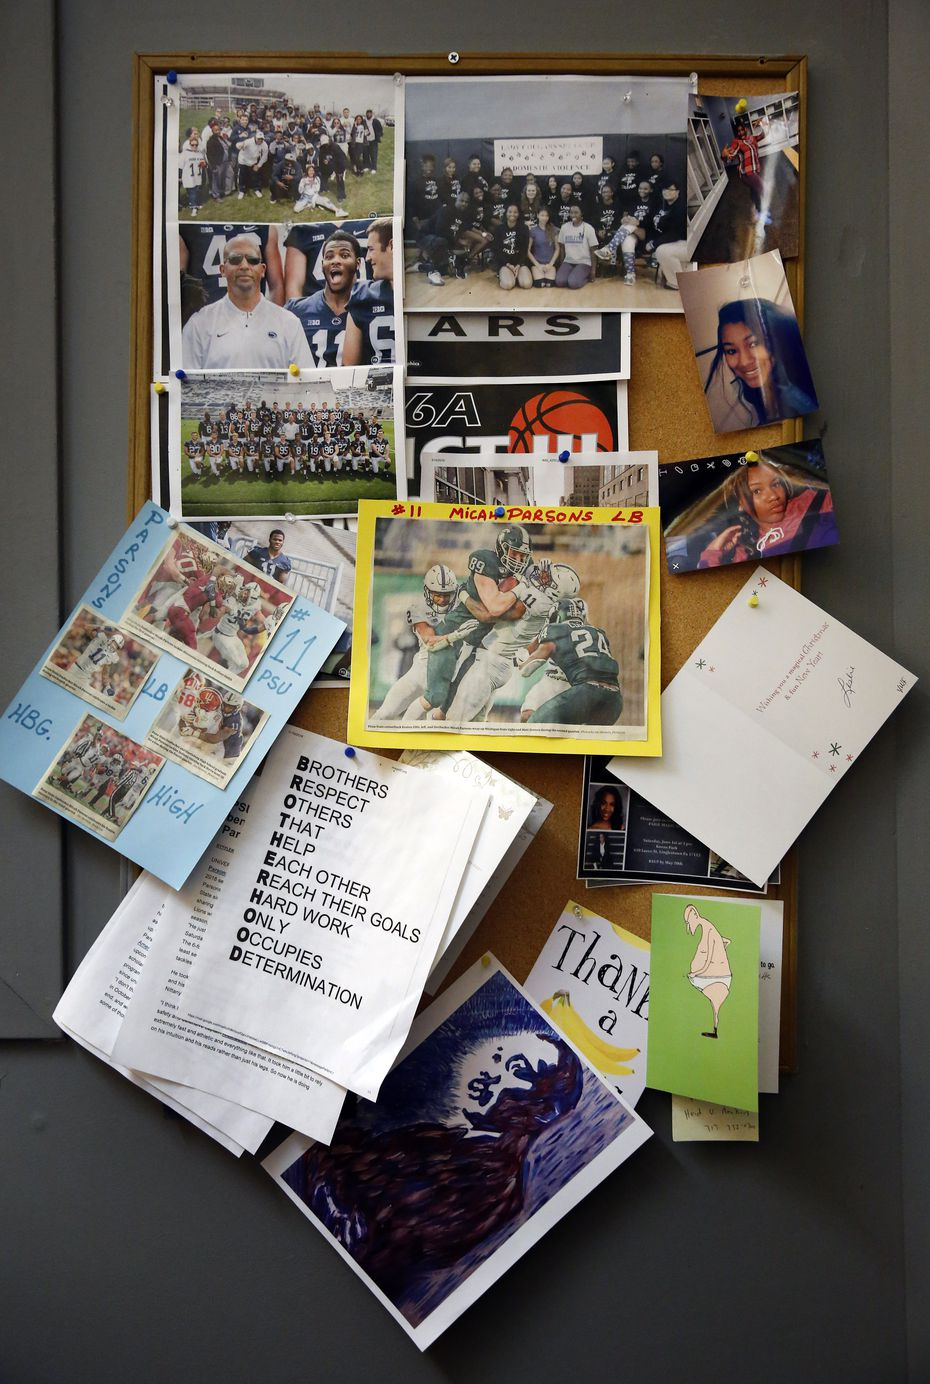 Terrence Parsons, Sr., father of Dallas Cowboys first-round draft pick Micah Parsons, has a collection of football photos of his son on display at Harrisburg High School SciTech Campus in downtown Harrisburg, Pa,, Thursday, May 20, 2021. He works as a security officer there at the school.